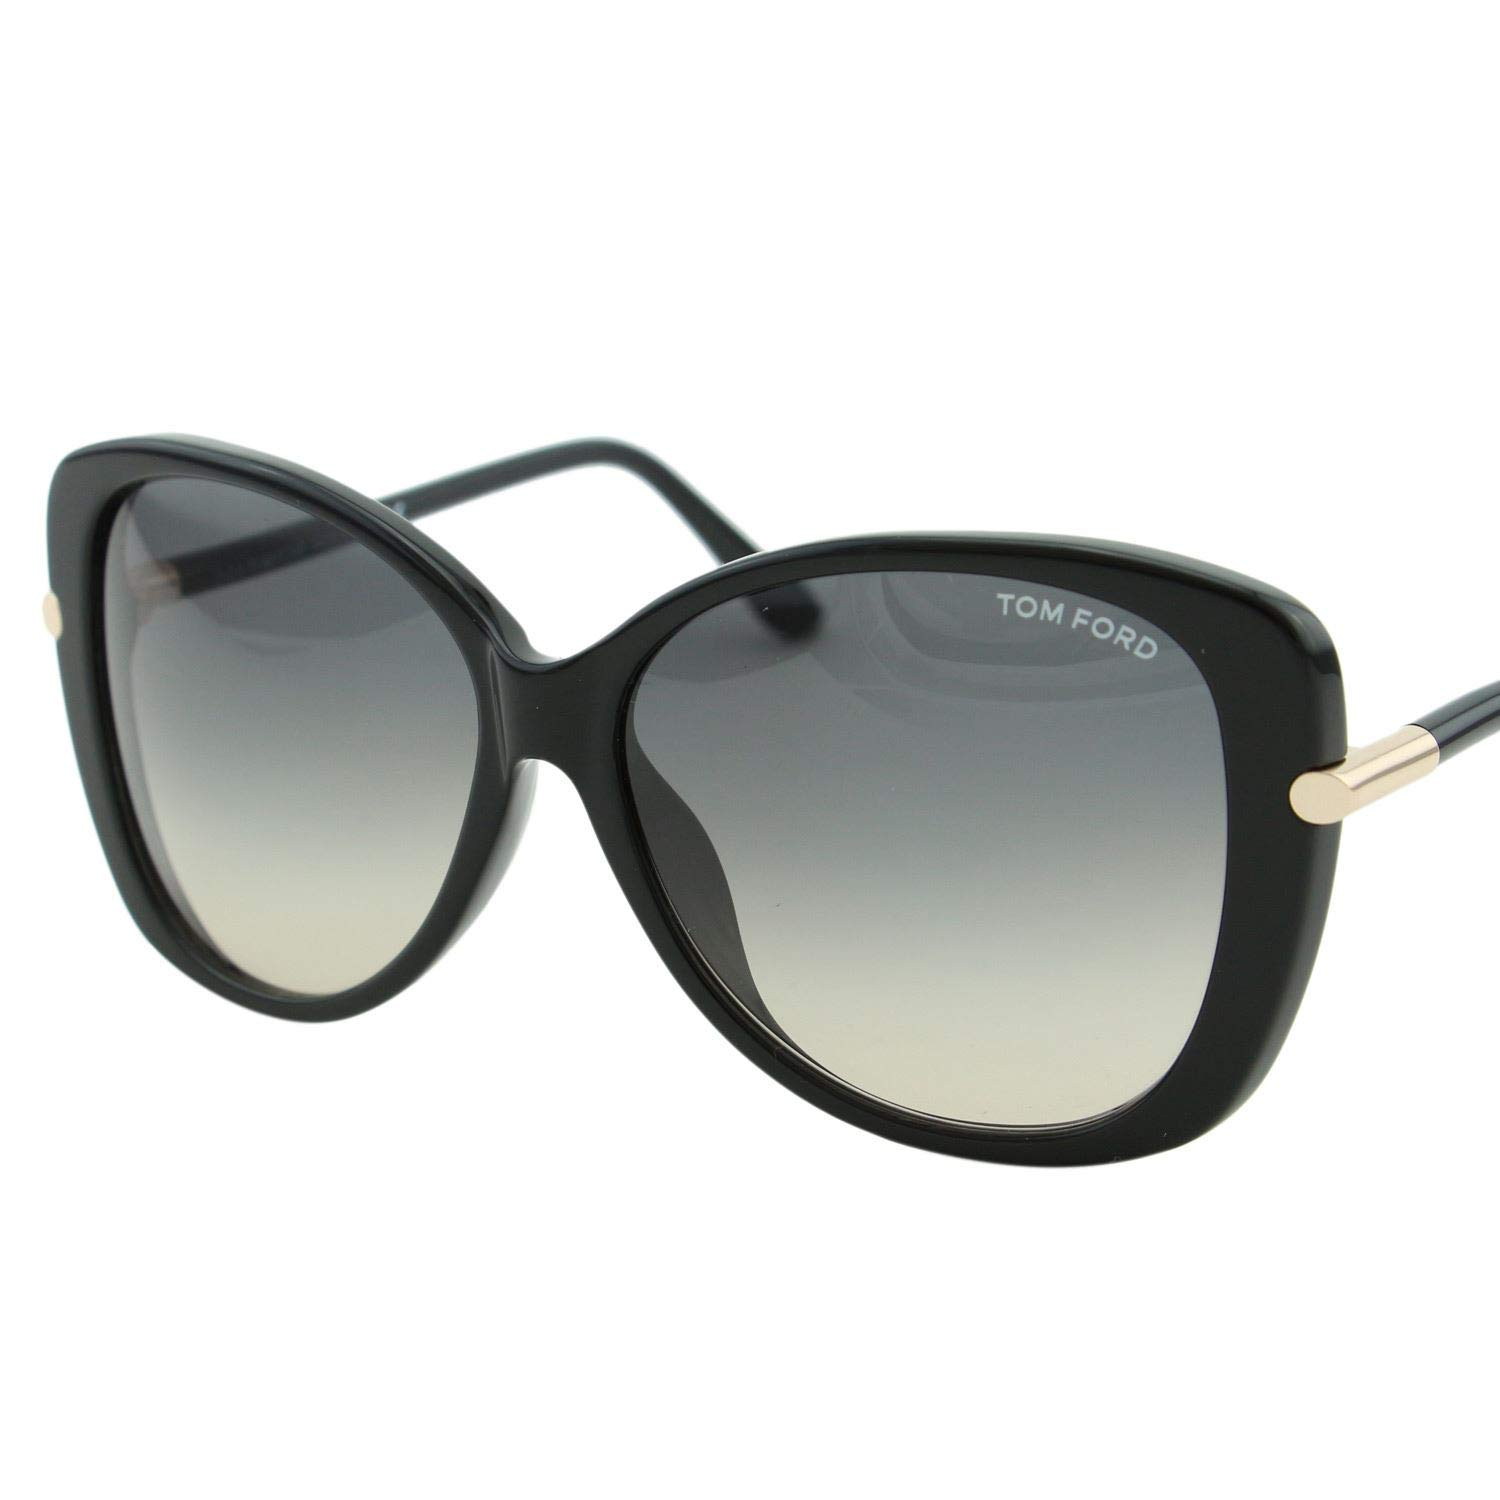 Tom Ford Sunglasses TF 9324 Sunglasses 01B Black with gold 59mm